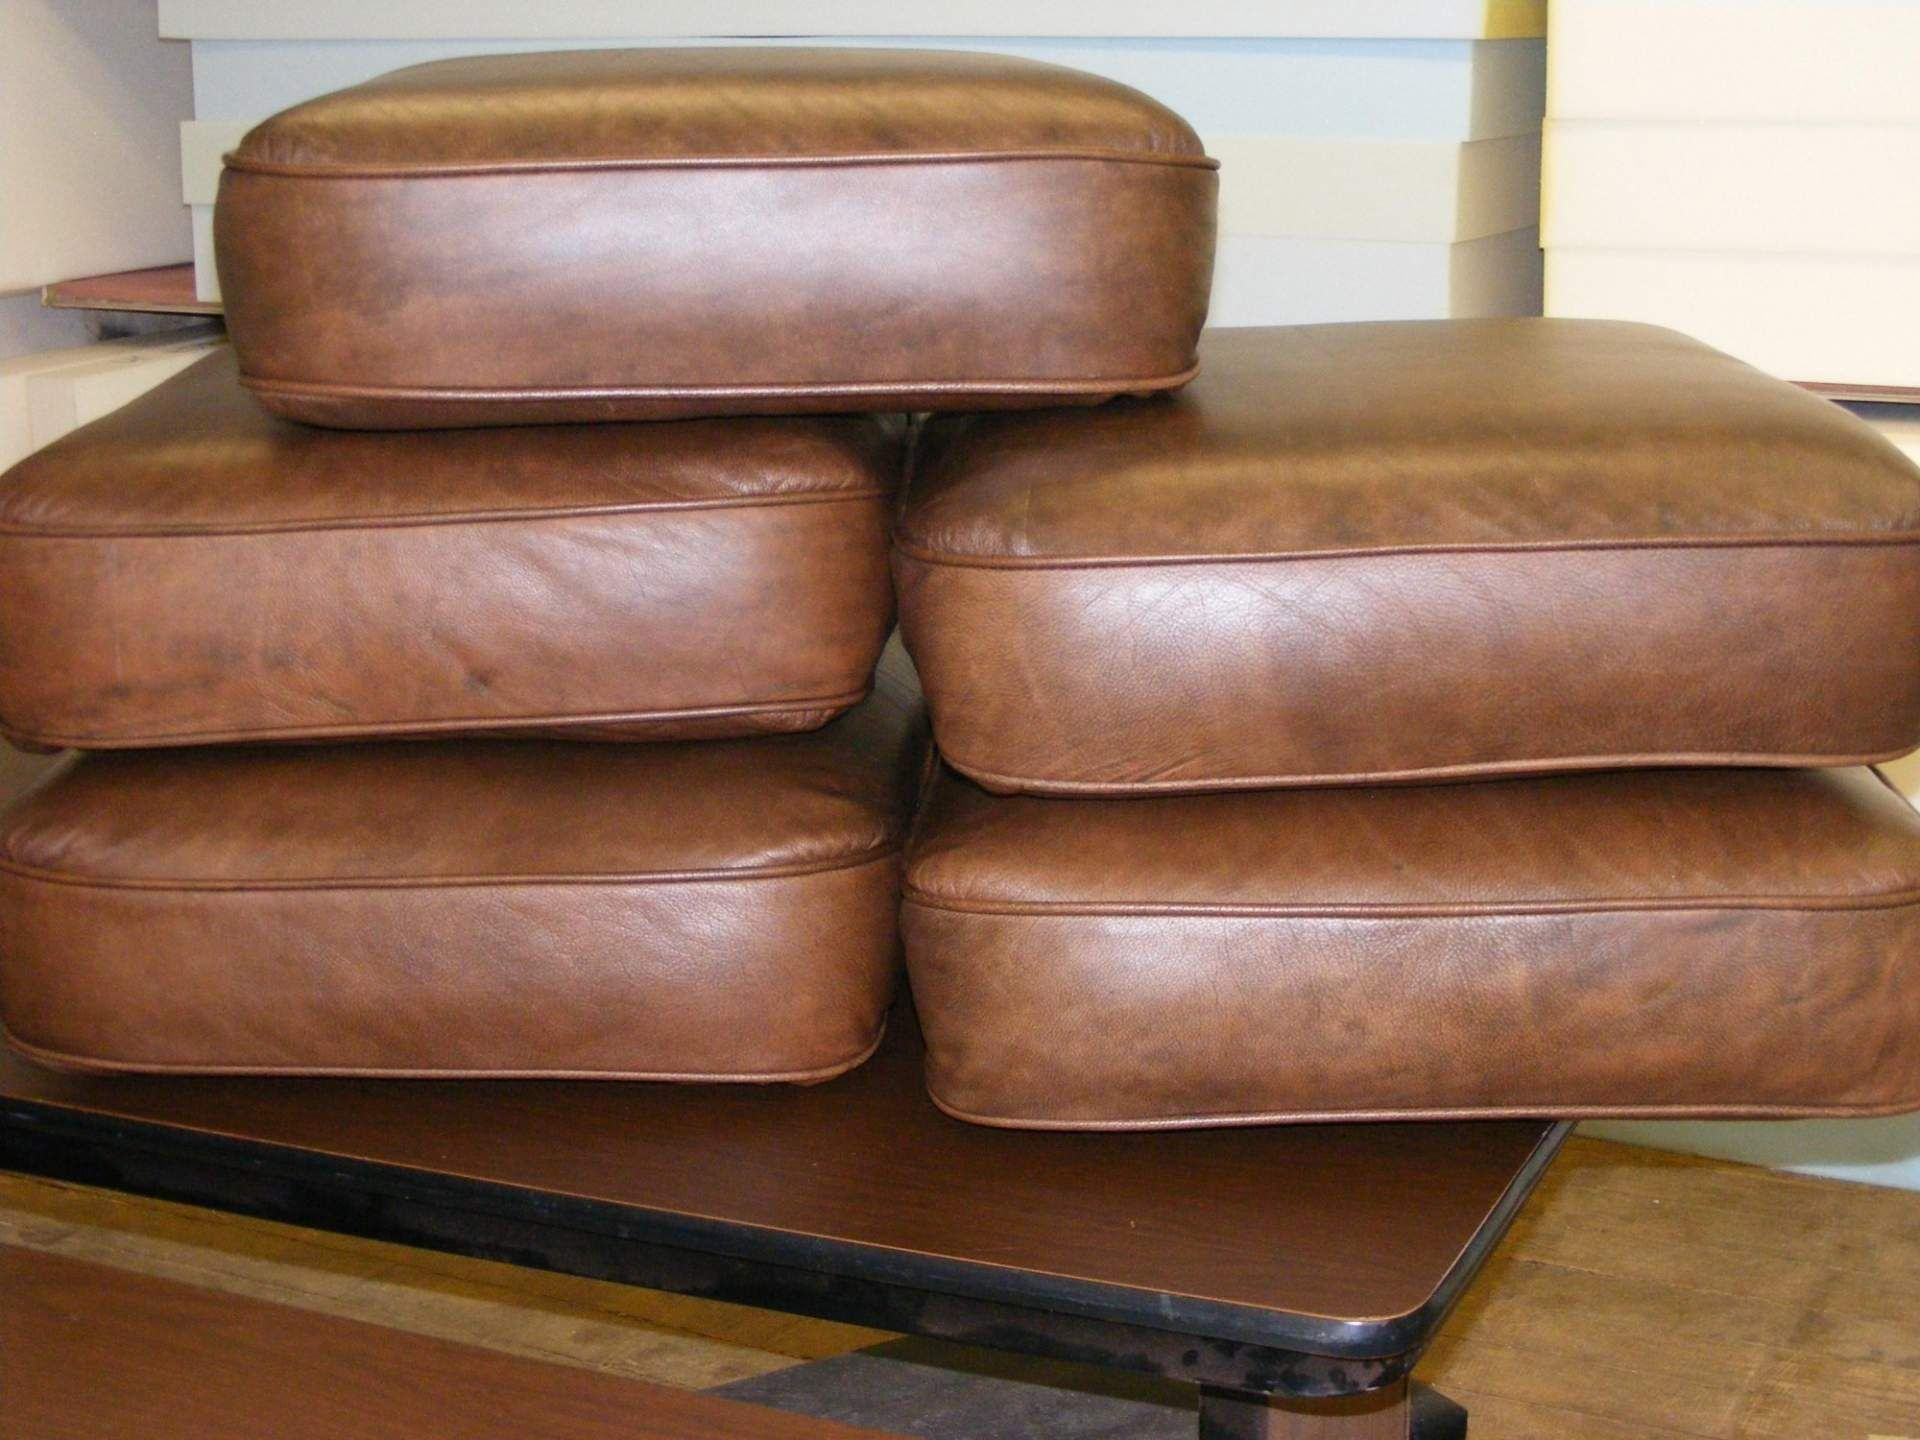 What Is The Density Of Foam In A Sofa Cushions On Sofa Couch Cushion Foam Wooden Sofa